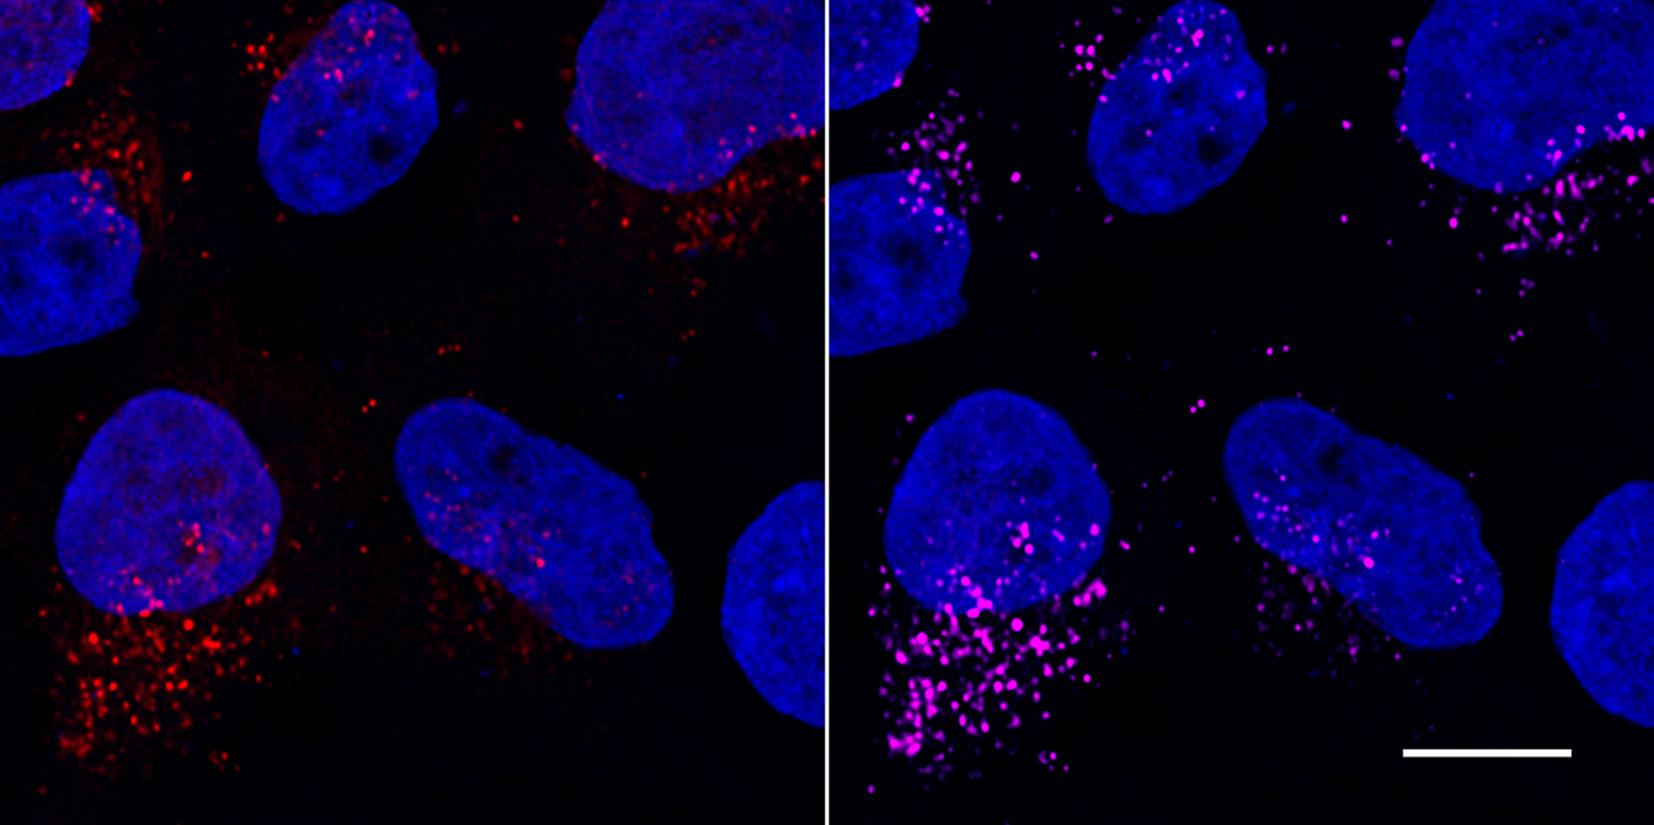 Confocal images of HeLa cells transiently transfected with LC3B-mCherry (red) and immunostained with RFP-Booster Alexa Fluor647 (magenta). Nuclei were stained with DAPI (blue). Scale bar, 10 µm. Images were recorded at the Core Facility Bioimaging at the Biomedical Center, LMU Munich.